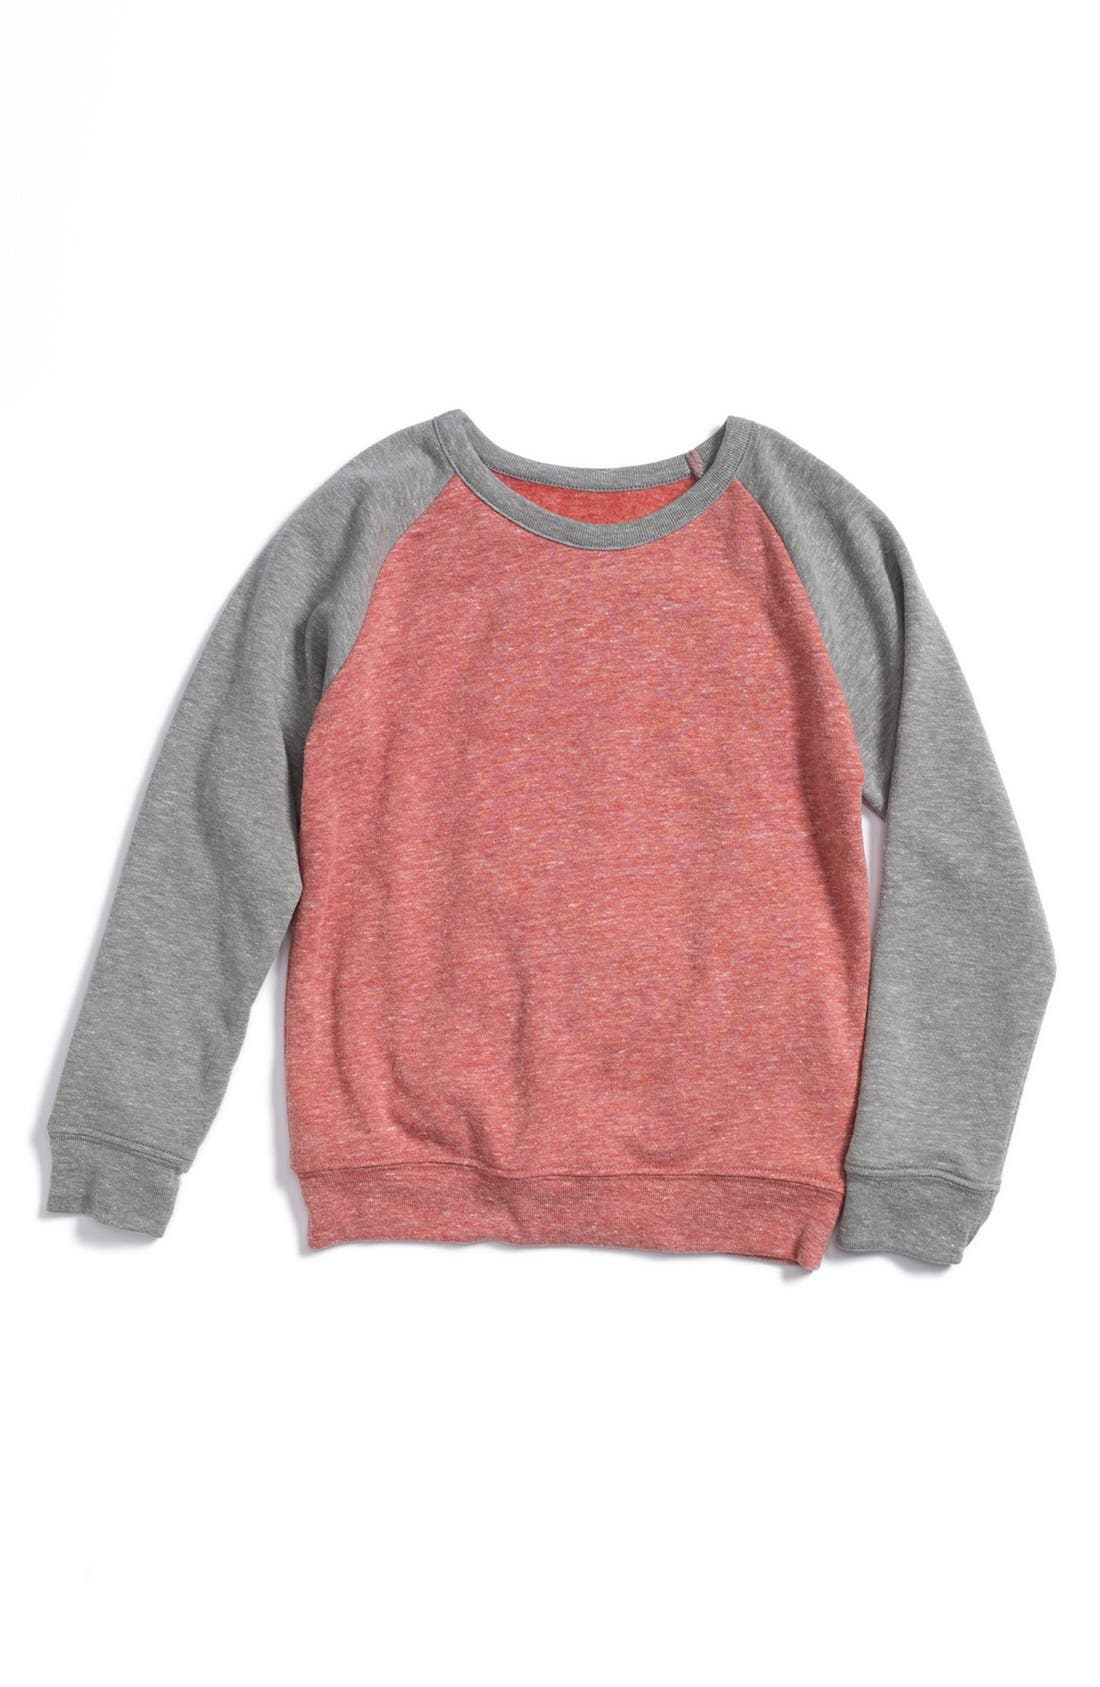 Alternate Image 1 Selected - Tucker + Tate Fleece Sweatshirt (Little Boys)